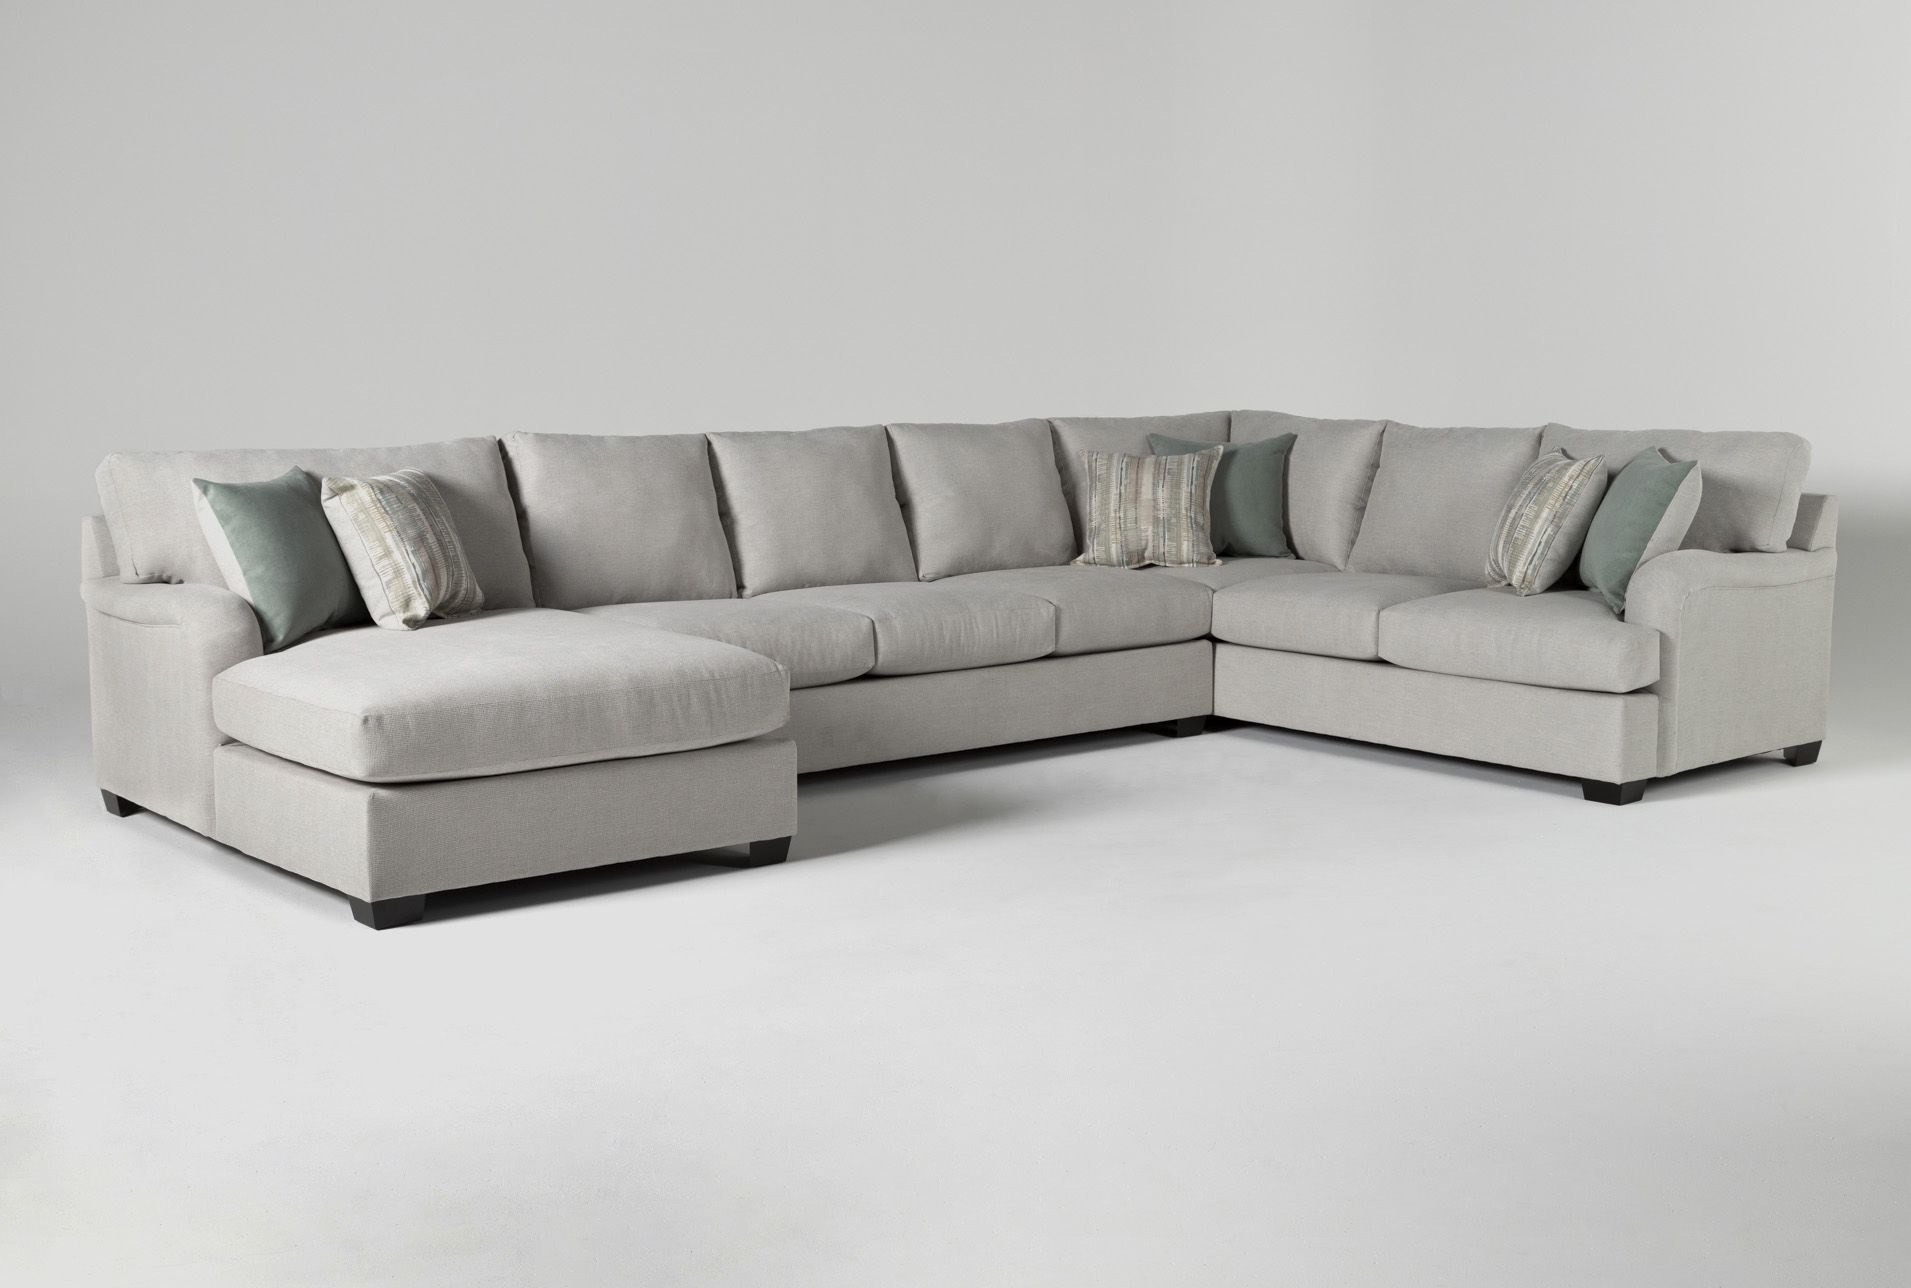 Jenner 3 Piece Sectional Sofa With Left Arm Facing Chaise